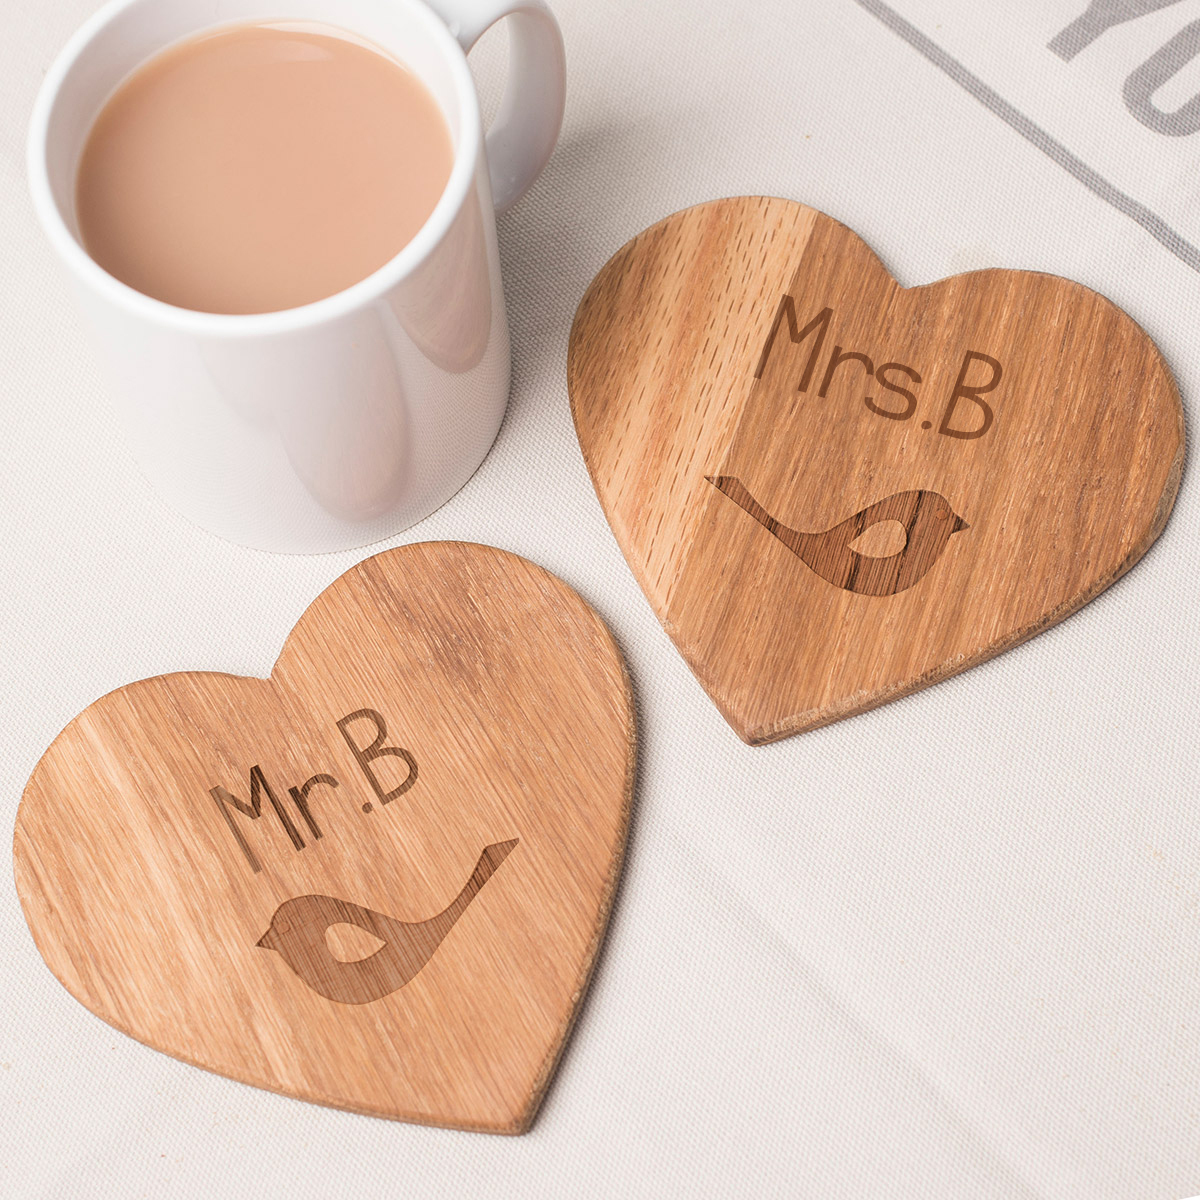 Personalised Set Of 2 Wooden Heart Coasters - Love Birds